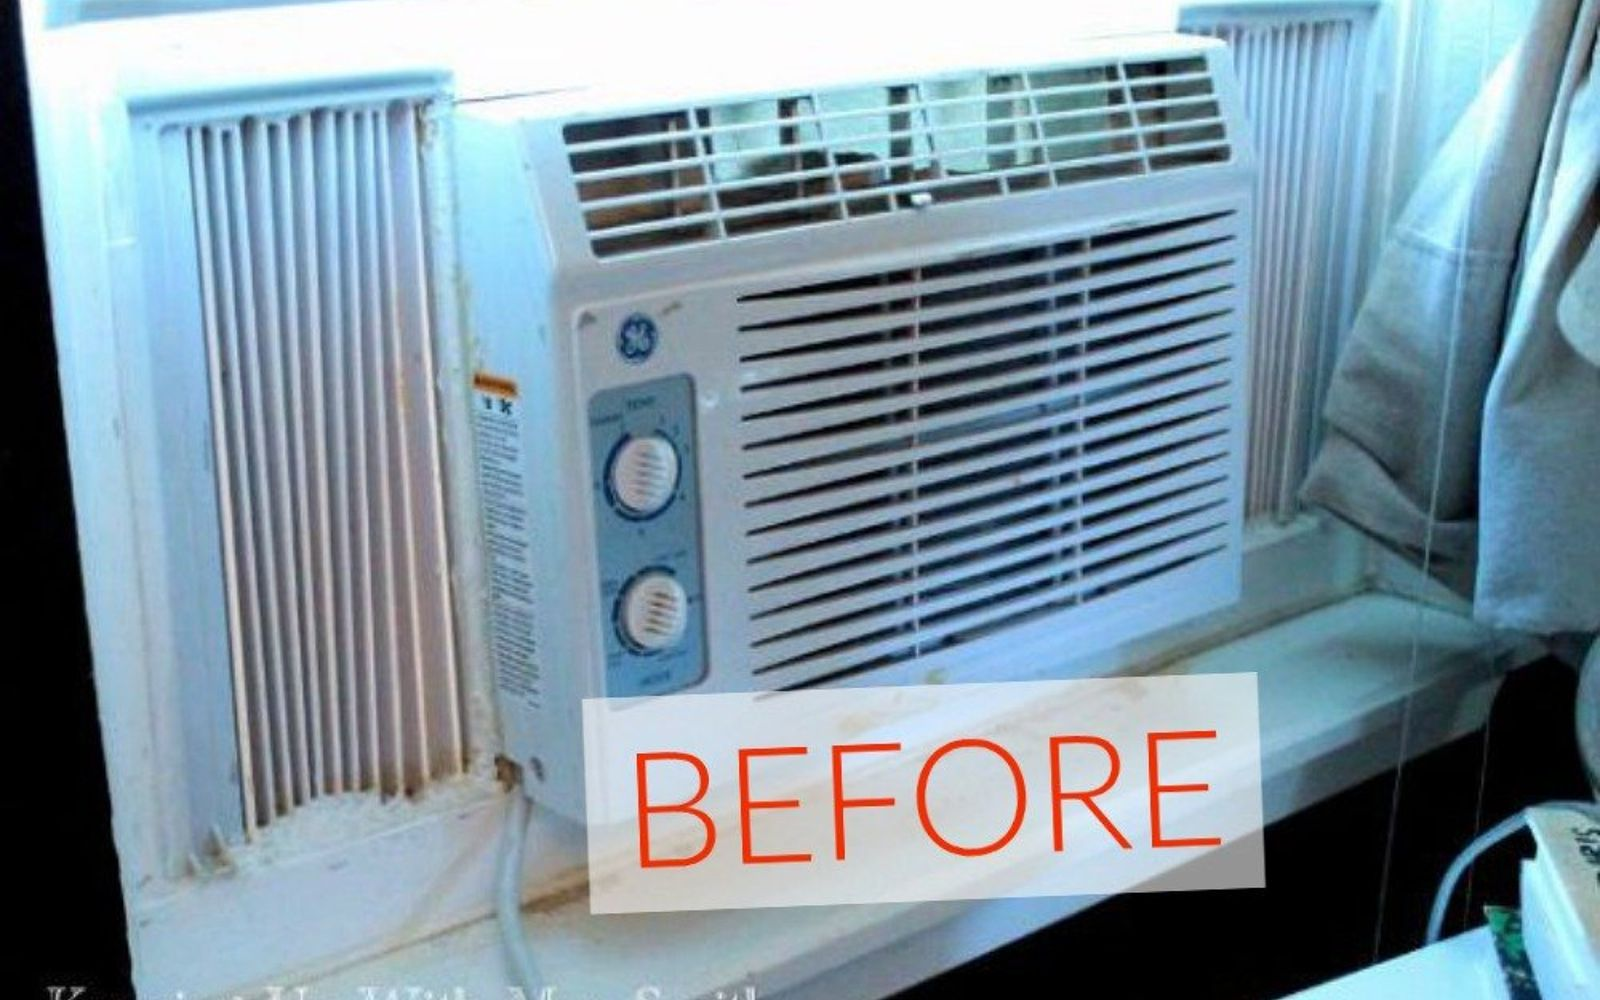 s don t buy new appliances these 9 diy hacks are brilliant, appliances, Before An ugly pop out window unit